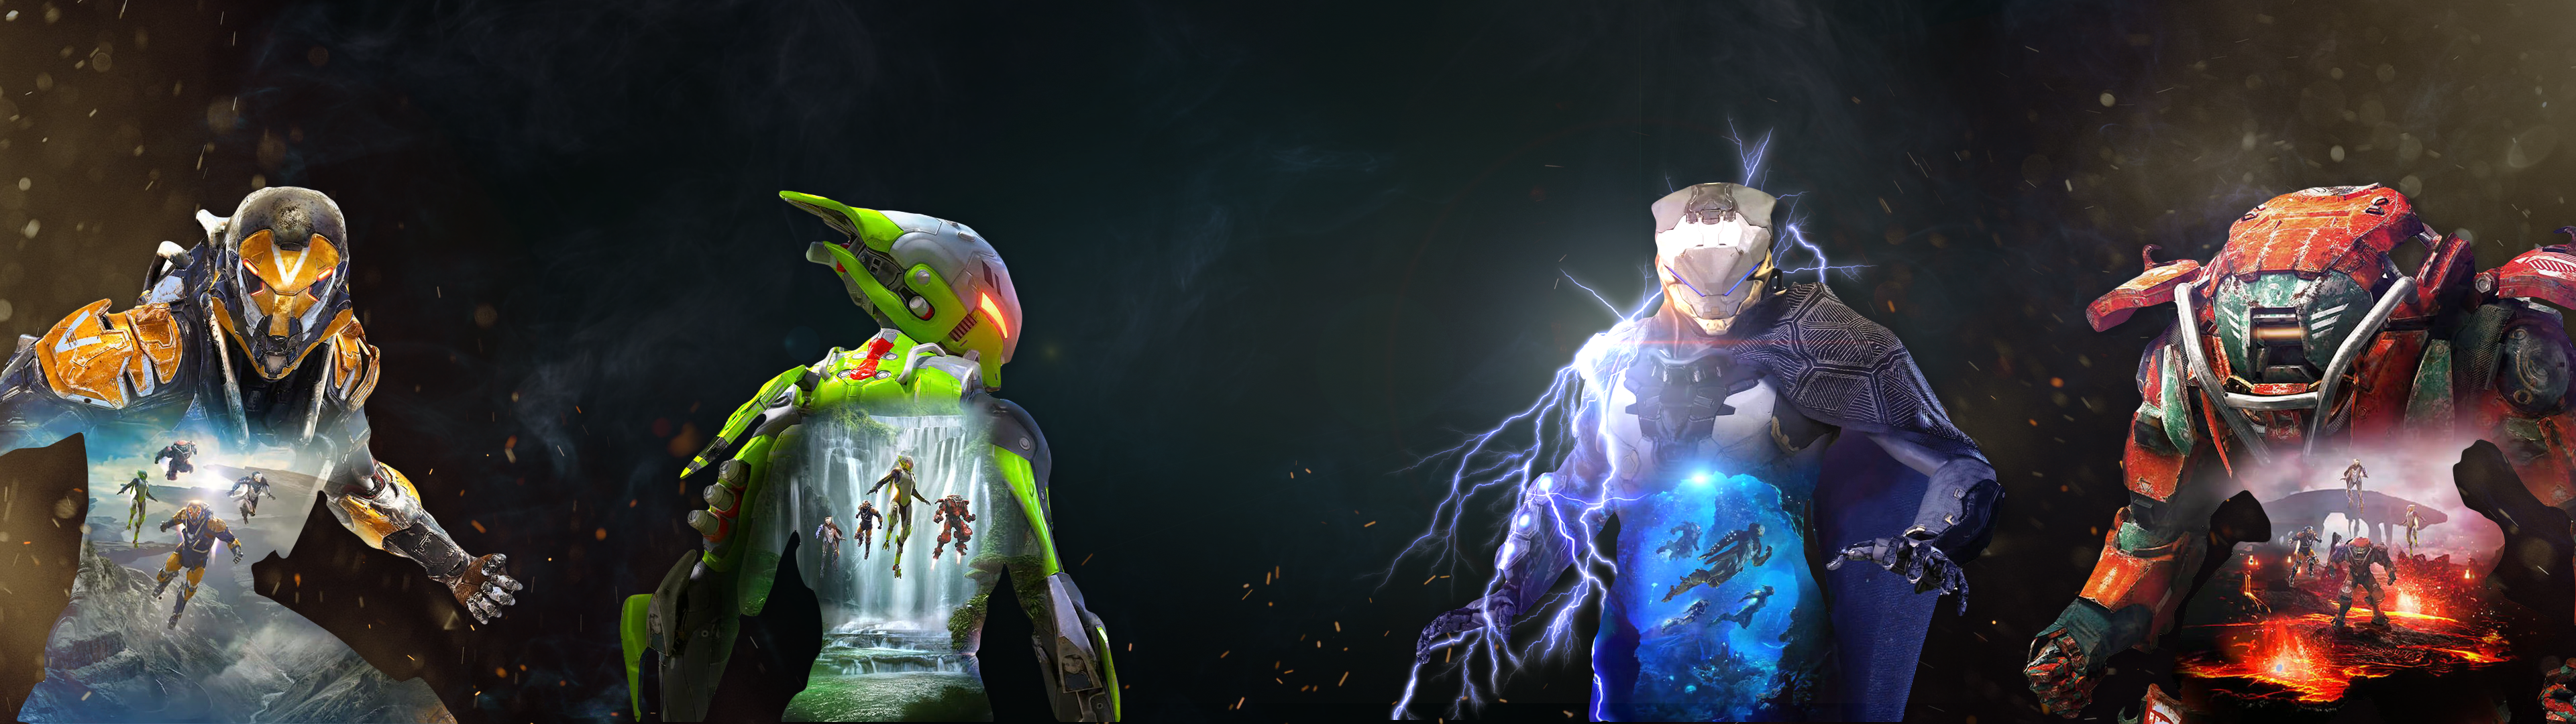 Anthem Javelins Dual Monitor Wallpaper 3840x1080 Dual Monitor